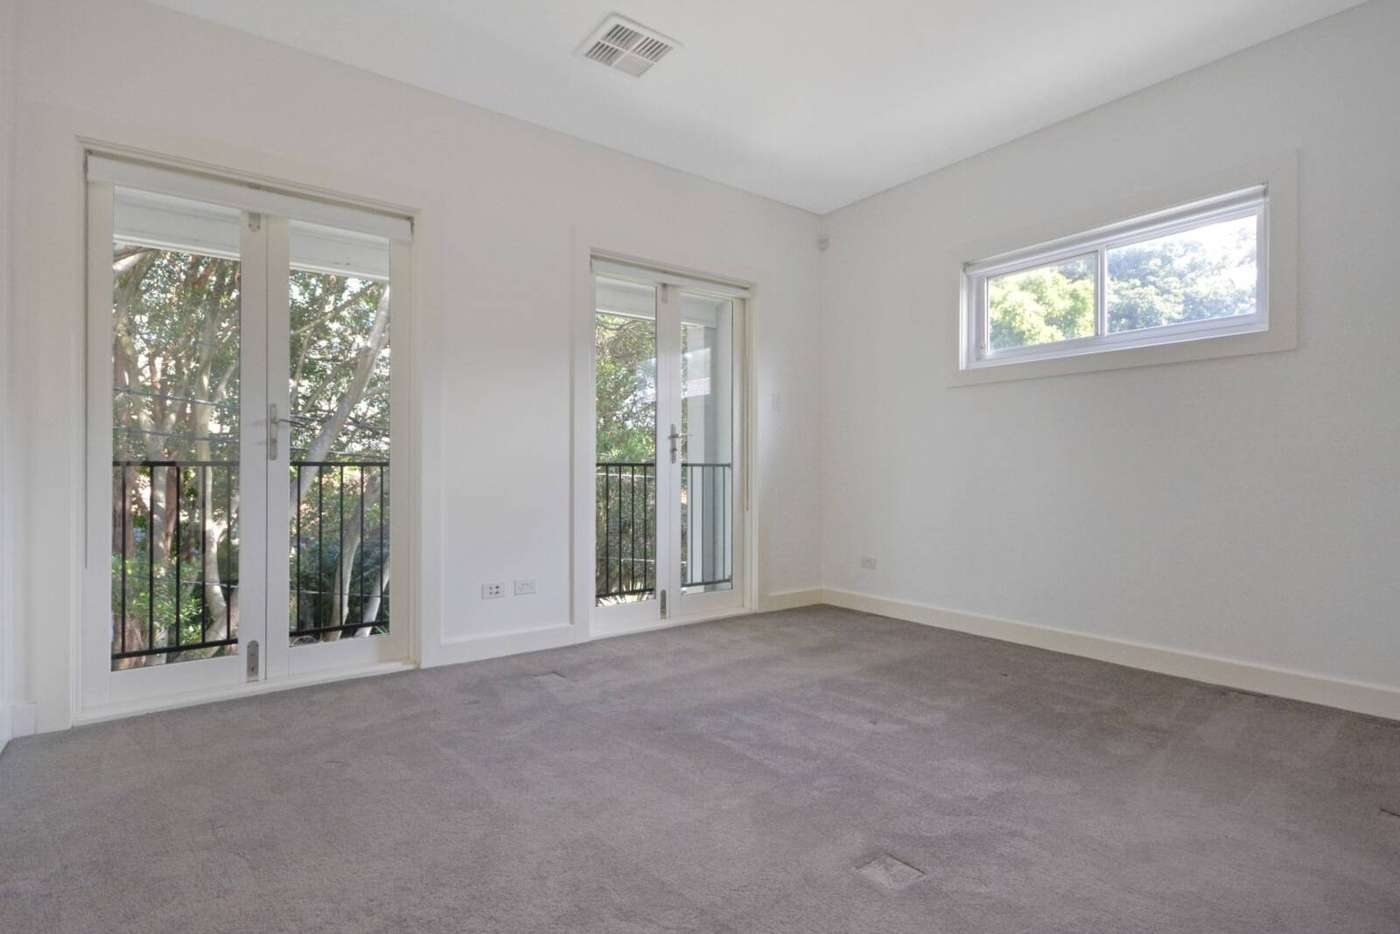 Sixth view of Homely house listing, 124 Newland Street, Queens Park NSW 2022